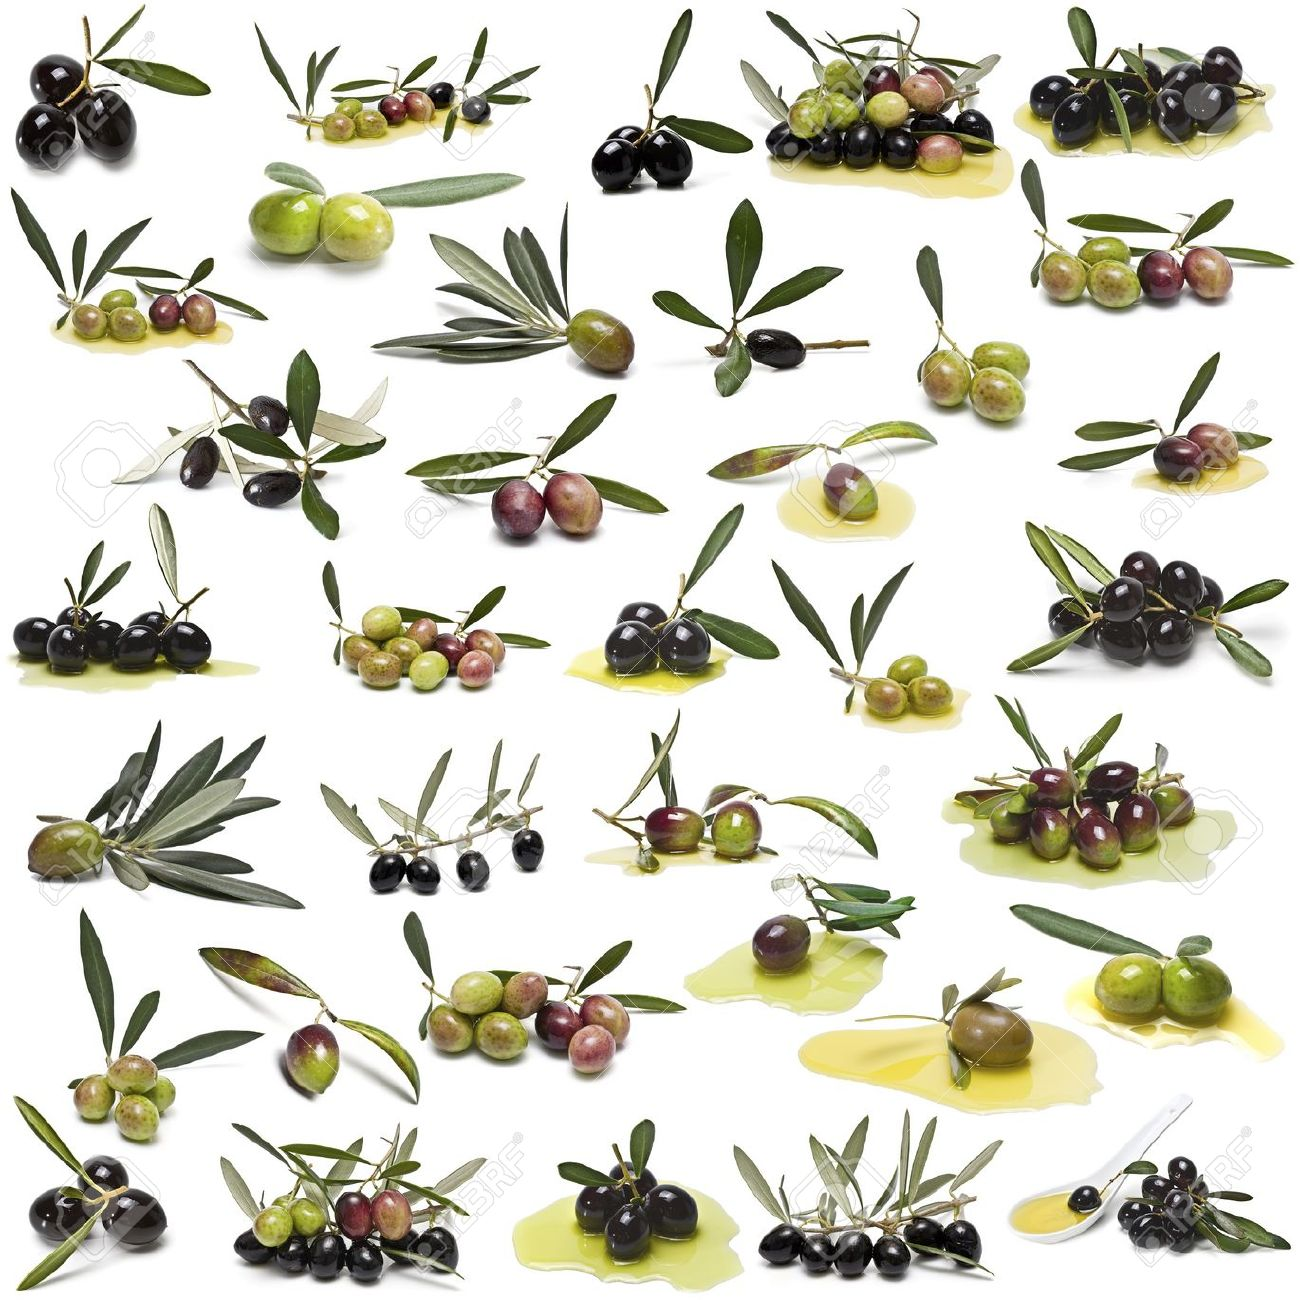 A large collection of photos of different varieties of olives isolated on white background. Stock Photo - 11597991